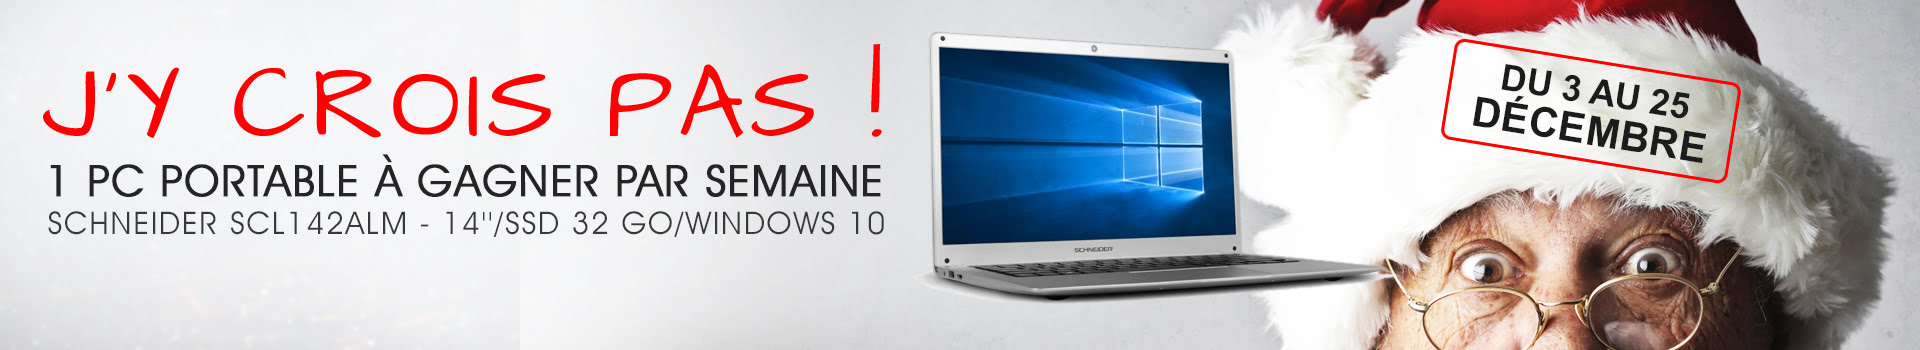 Concours Gagner PC portable schneider